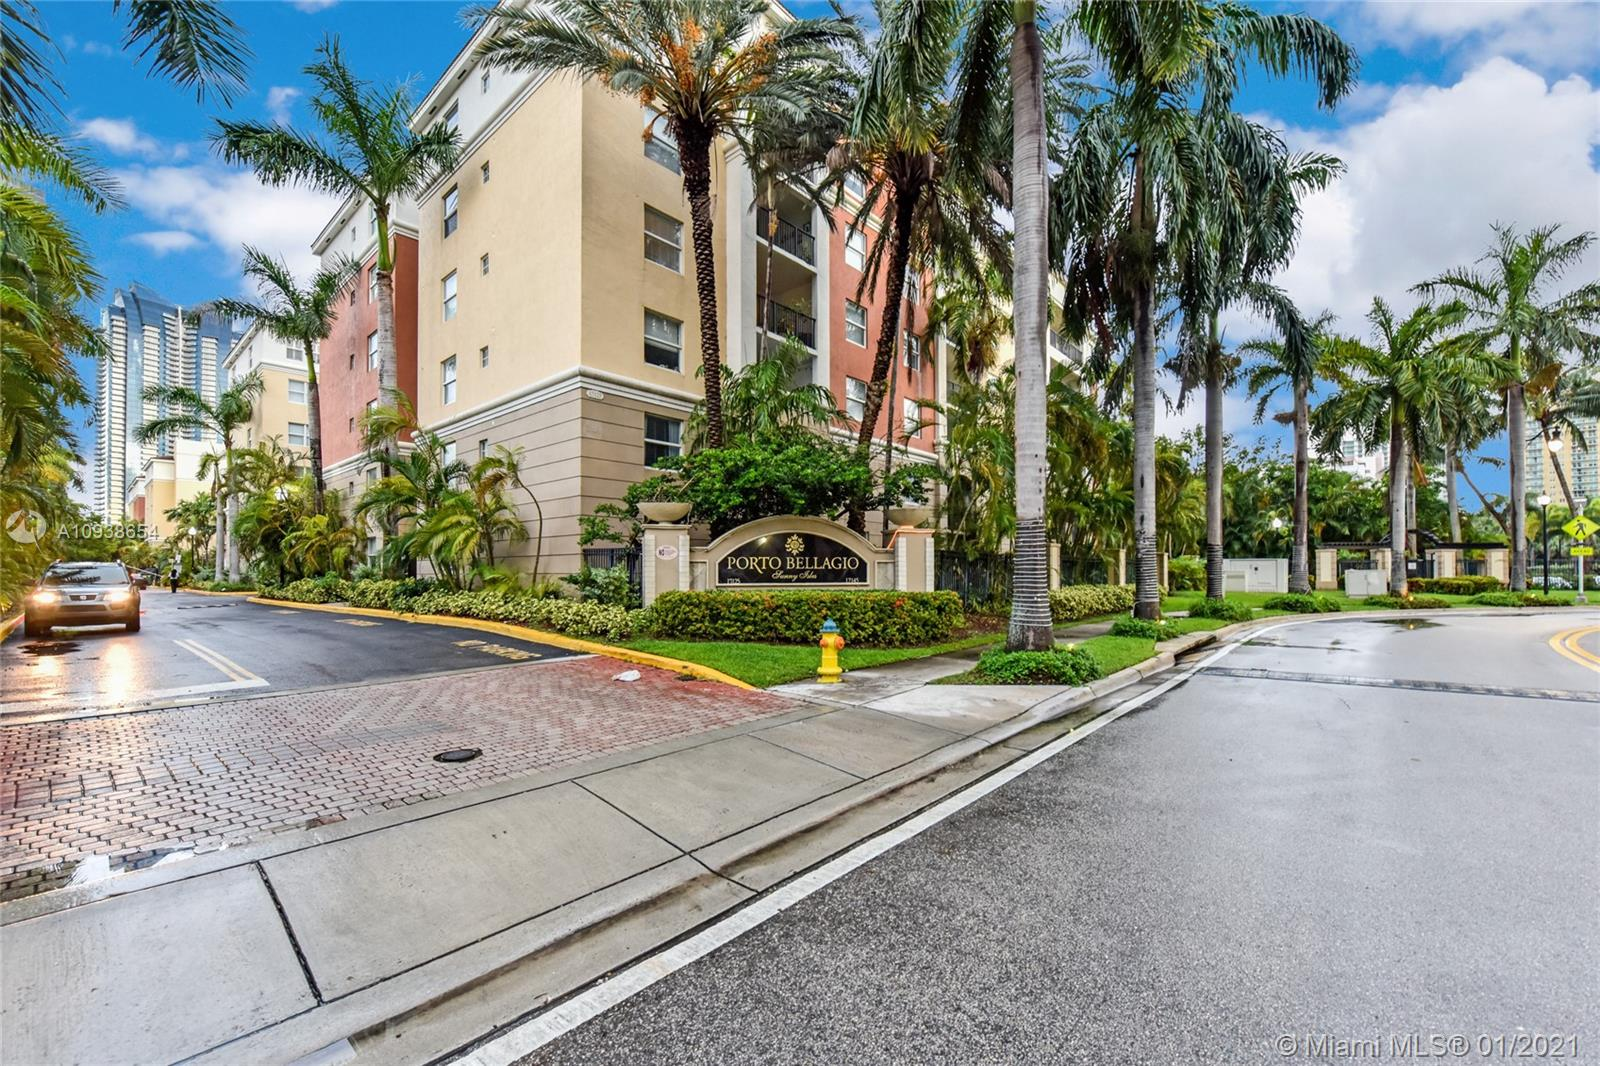 Porto Bellagio 2 #3103 - 17125 N Bay Rd #3103, Sunny Isles Beach, FL 33160